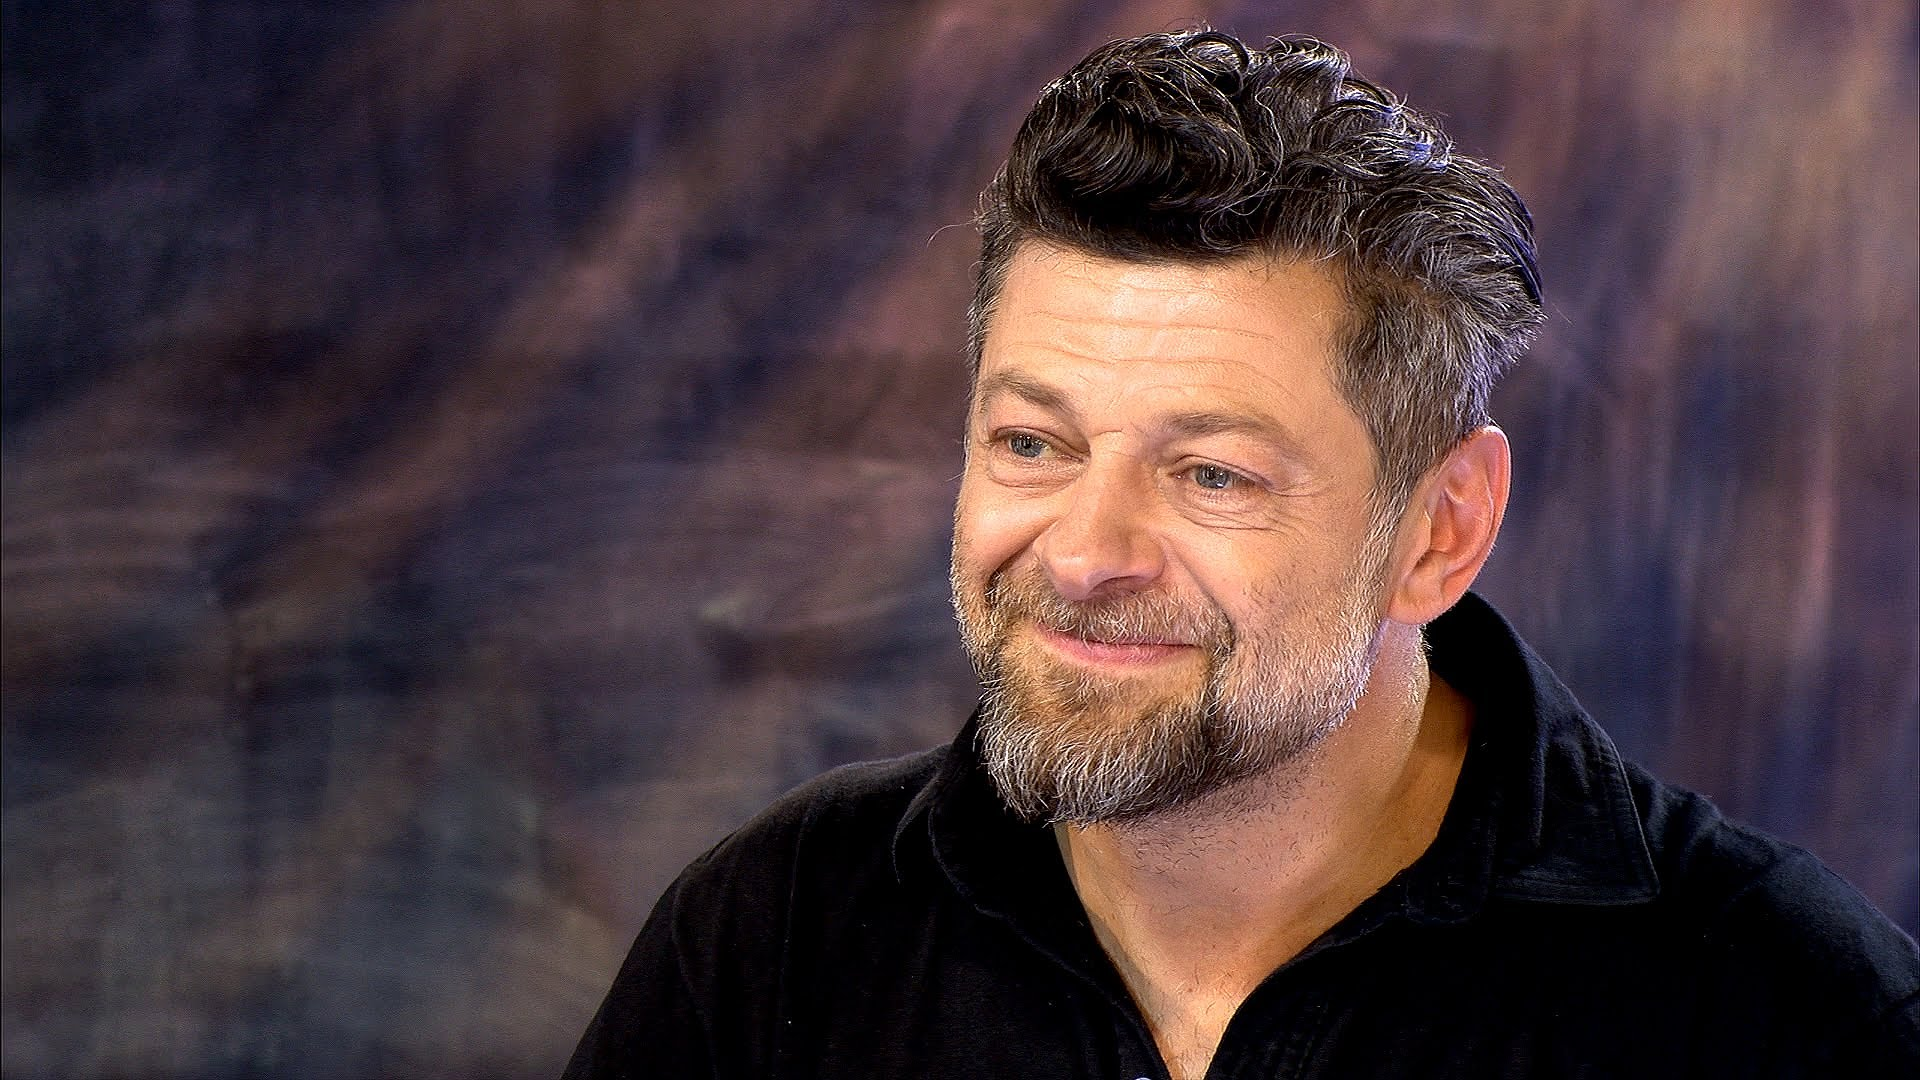 1920x1080 - Andy Serkis Wallpapers 7